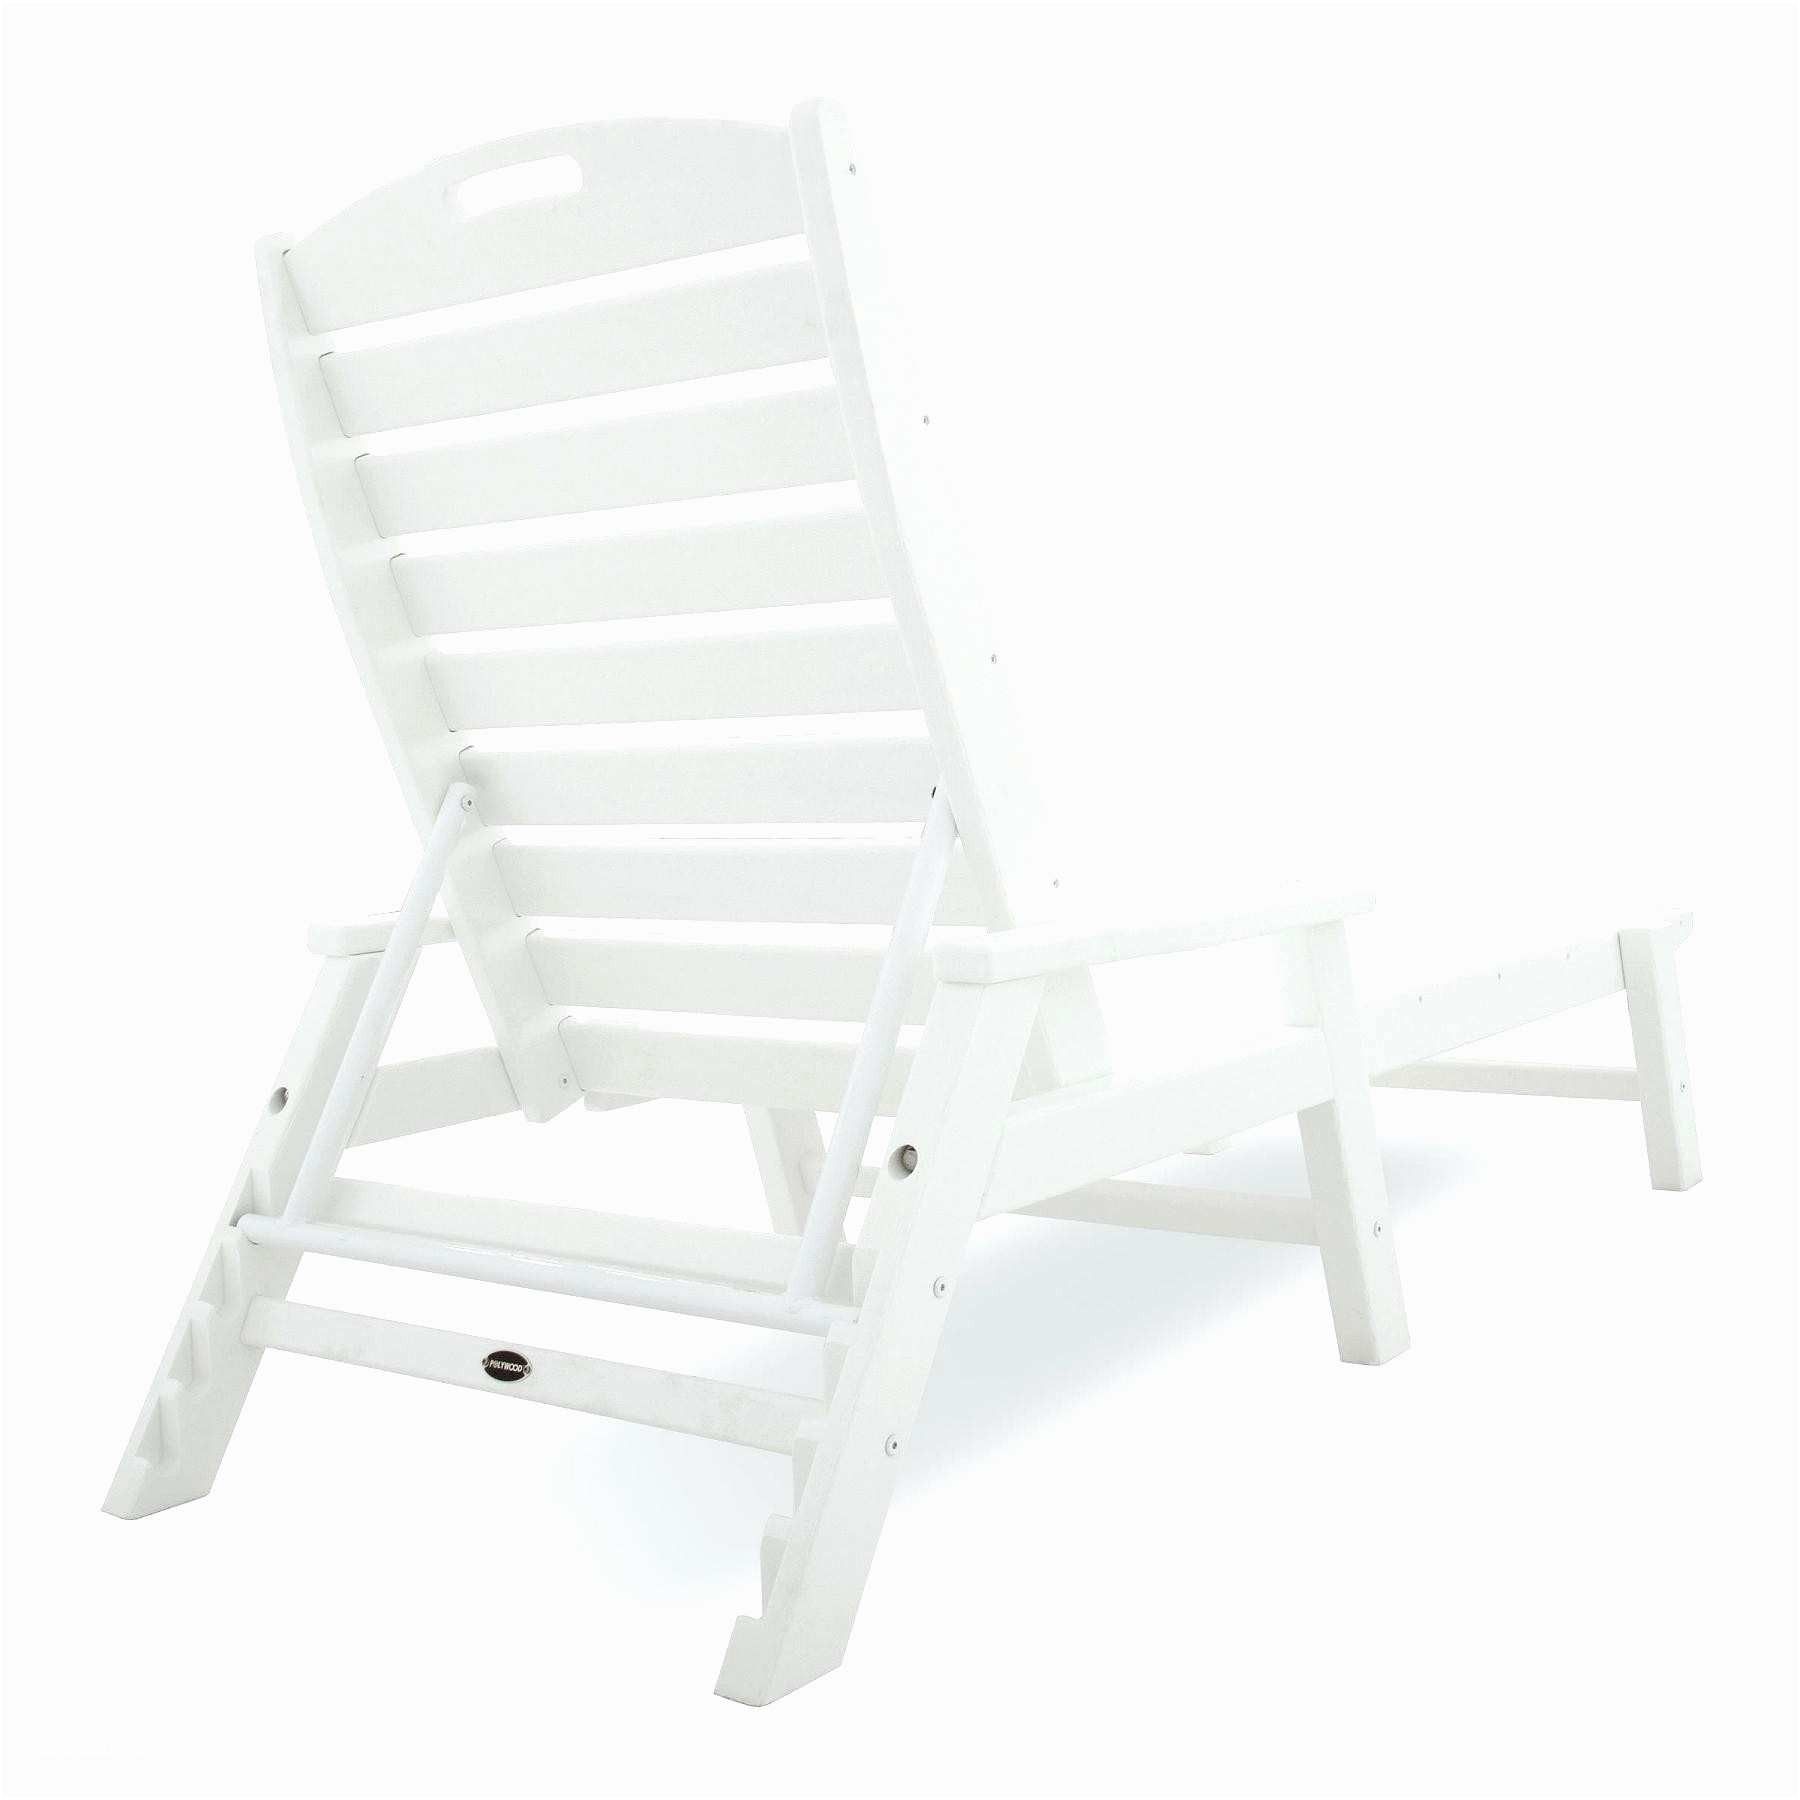 patio bench walmart best of 36 design better homes and gardens outdoor furniture replacement of 17